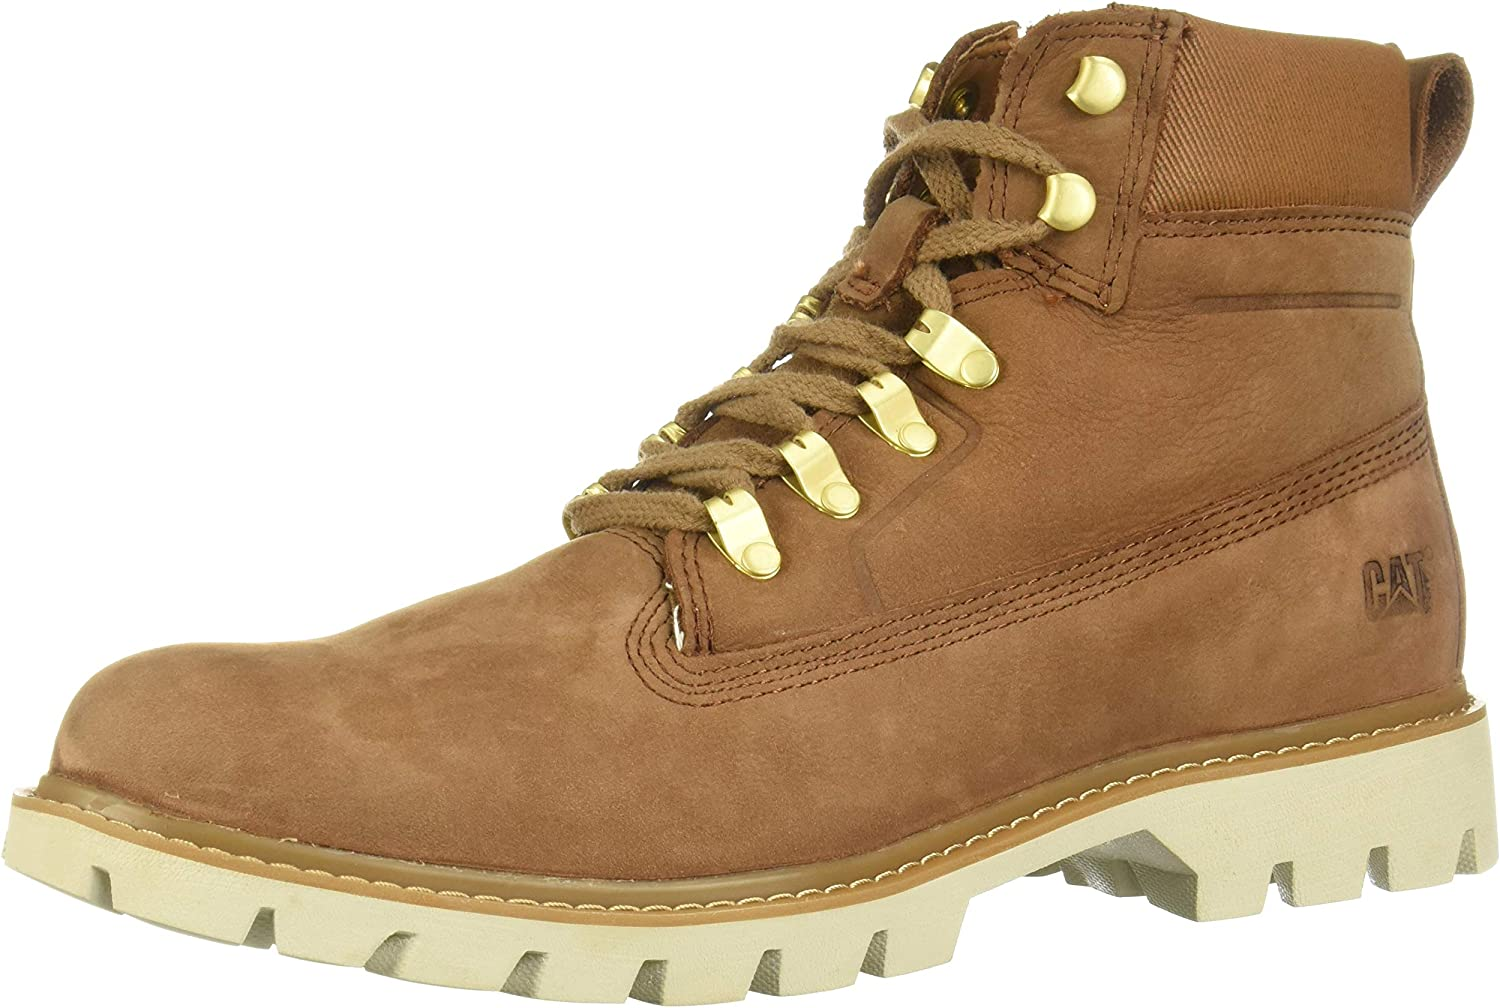 Caterpillar Men's Lexicon Classic Boots